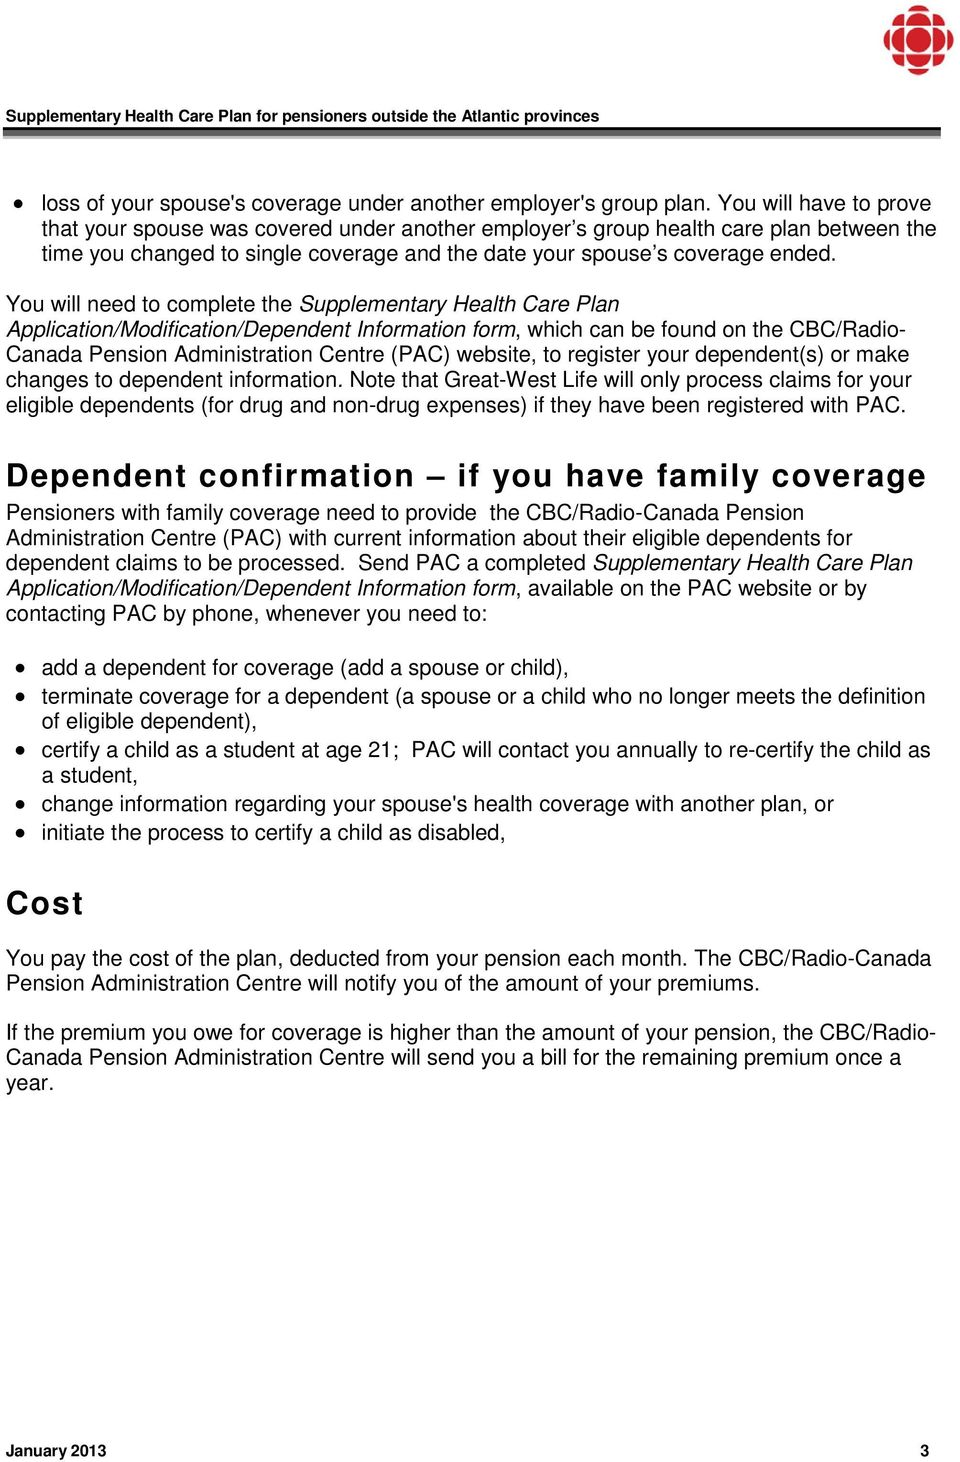 You will need to complete the Supplementary Health Care Plan Application/Modification/Dependent Information form, which can be found on the CBC/Radio- Canada Pension Administration Centre (PAC)